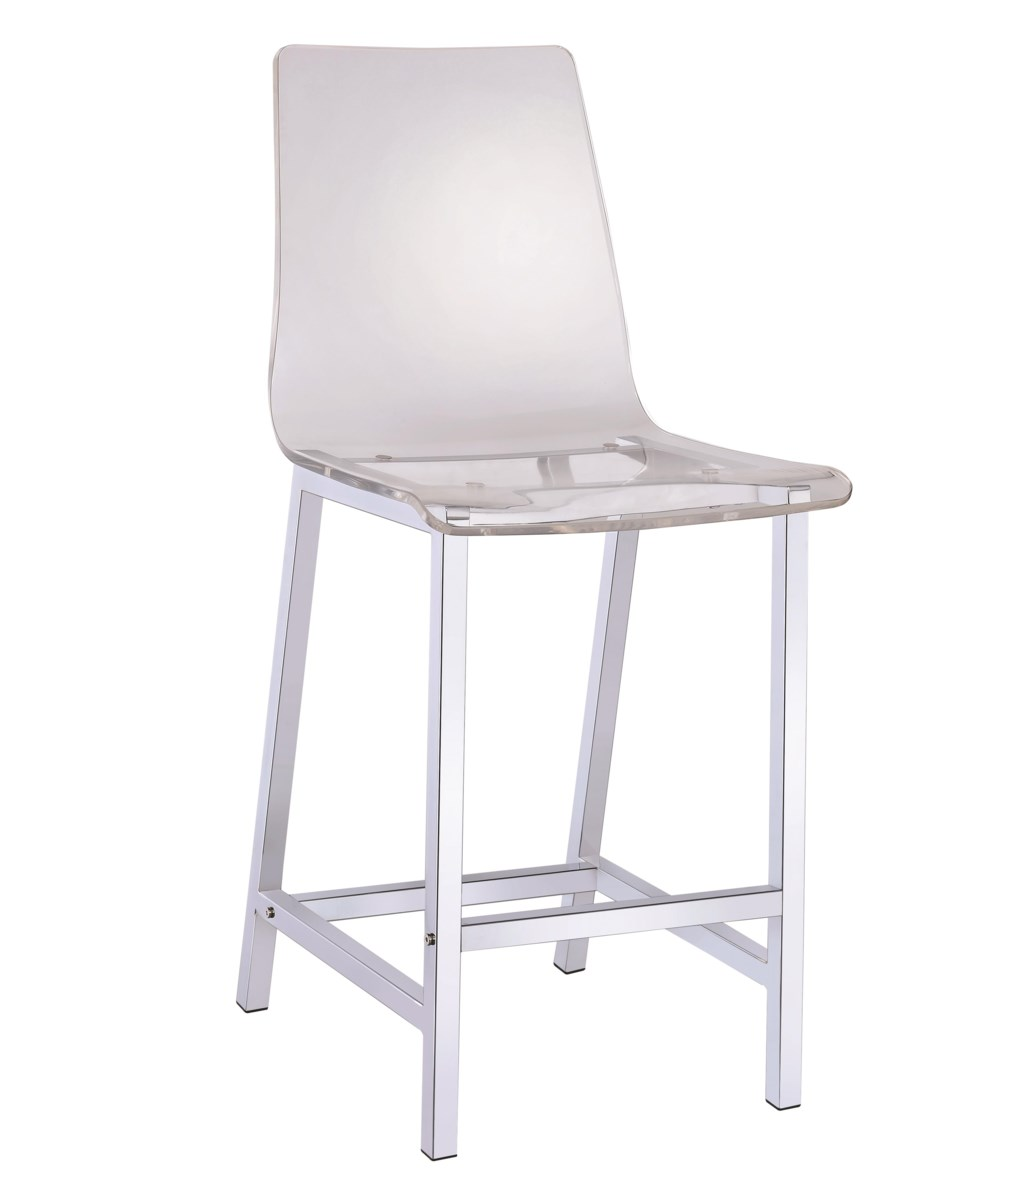 Dining chairs and bar stools acrylic counter height stool with chrome base by coaster